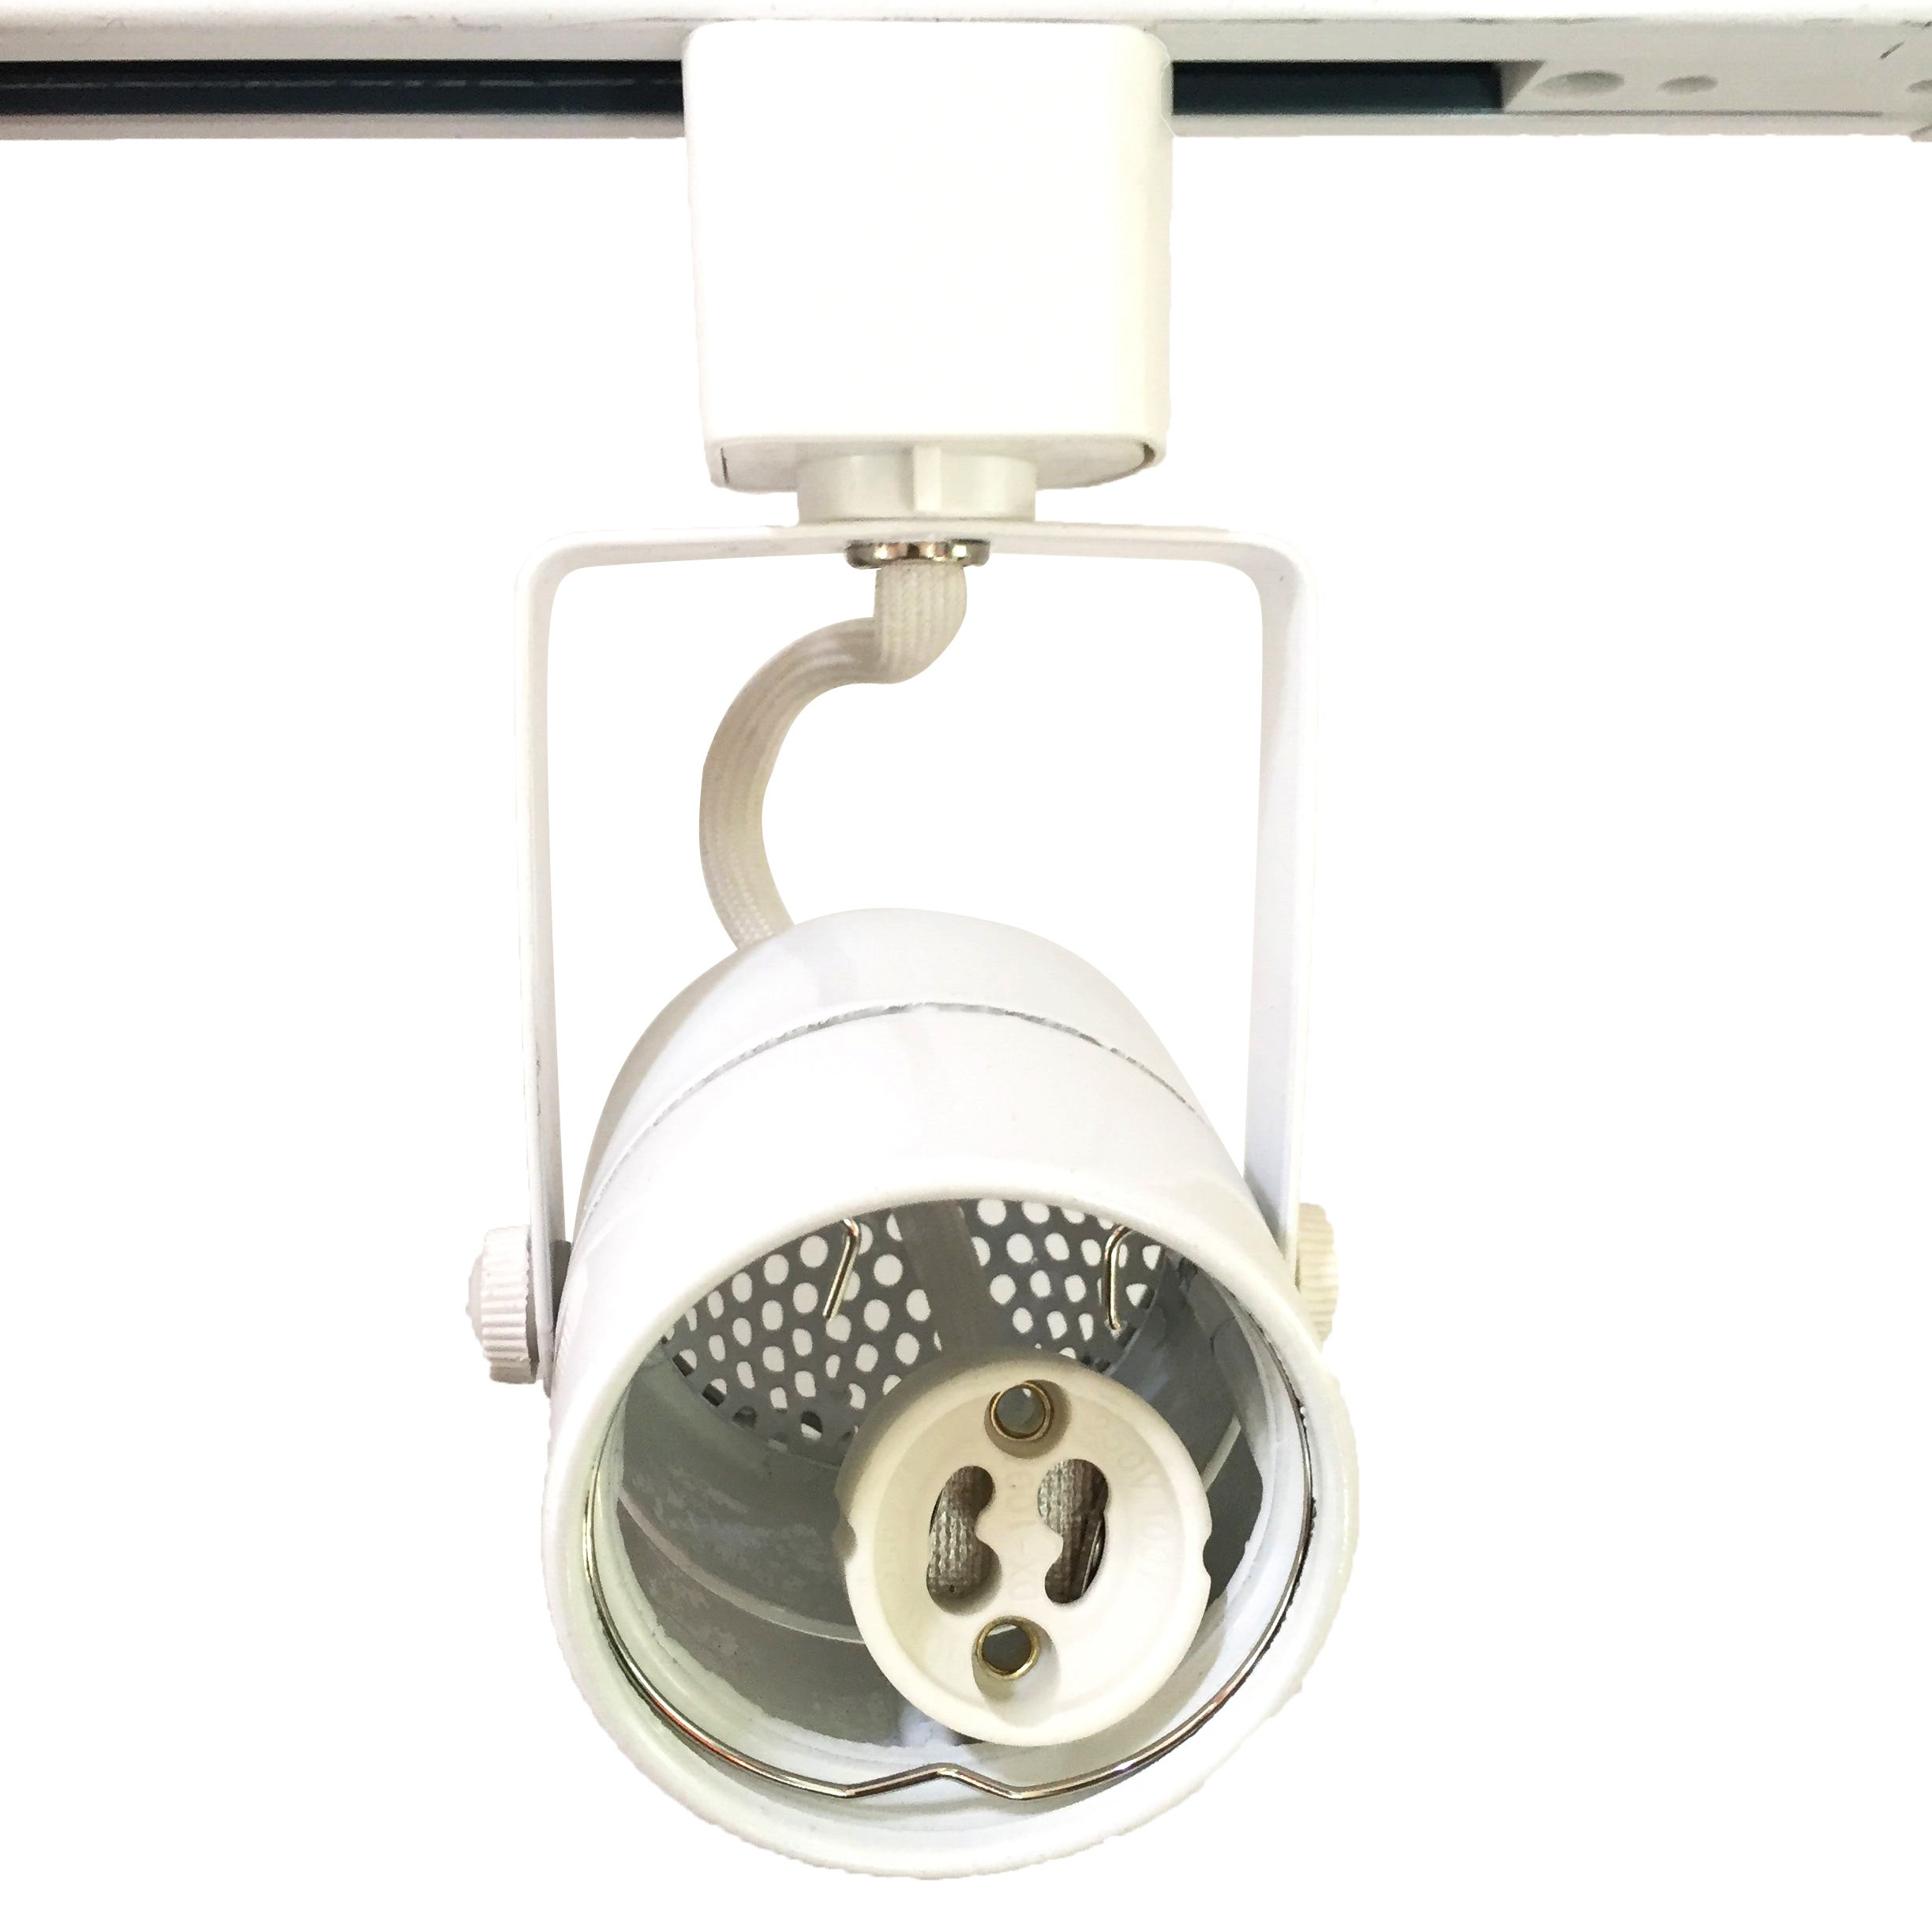 King SHA White GU10 Line Voltage Track Lighting Head (Bulb NOT Included) Compatible H Type 3-Wire Single Circuit Track Systems